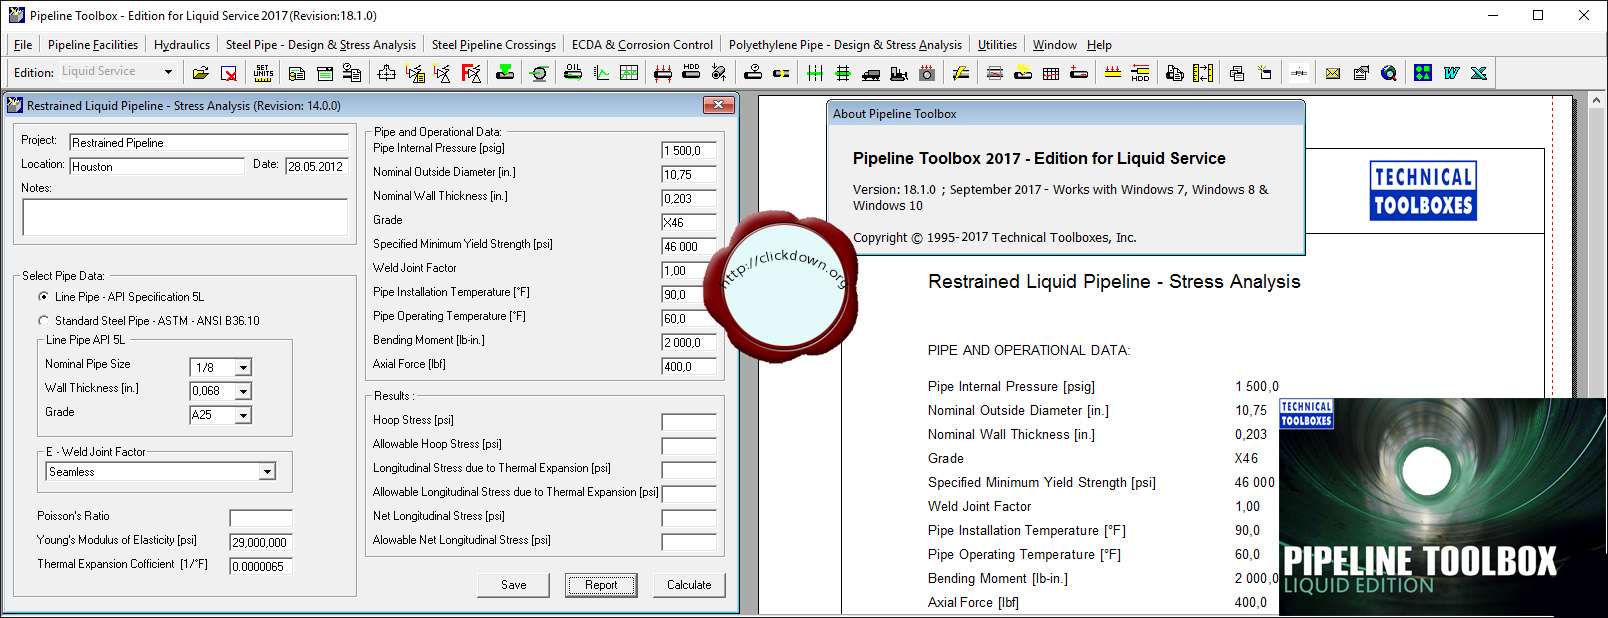 Download TTI Pipeline Toolbox 2017 v18.1.0 Liquid / Gas full license